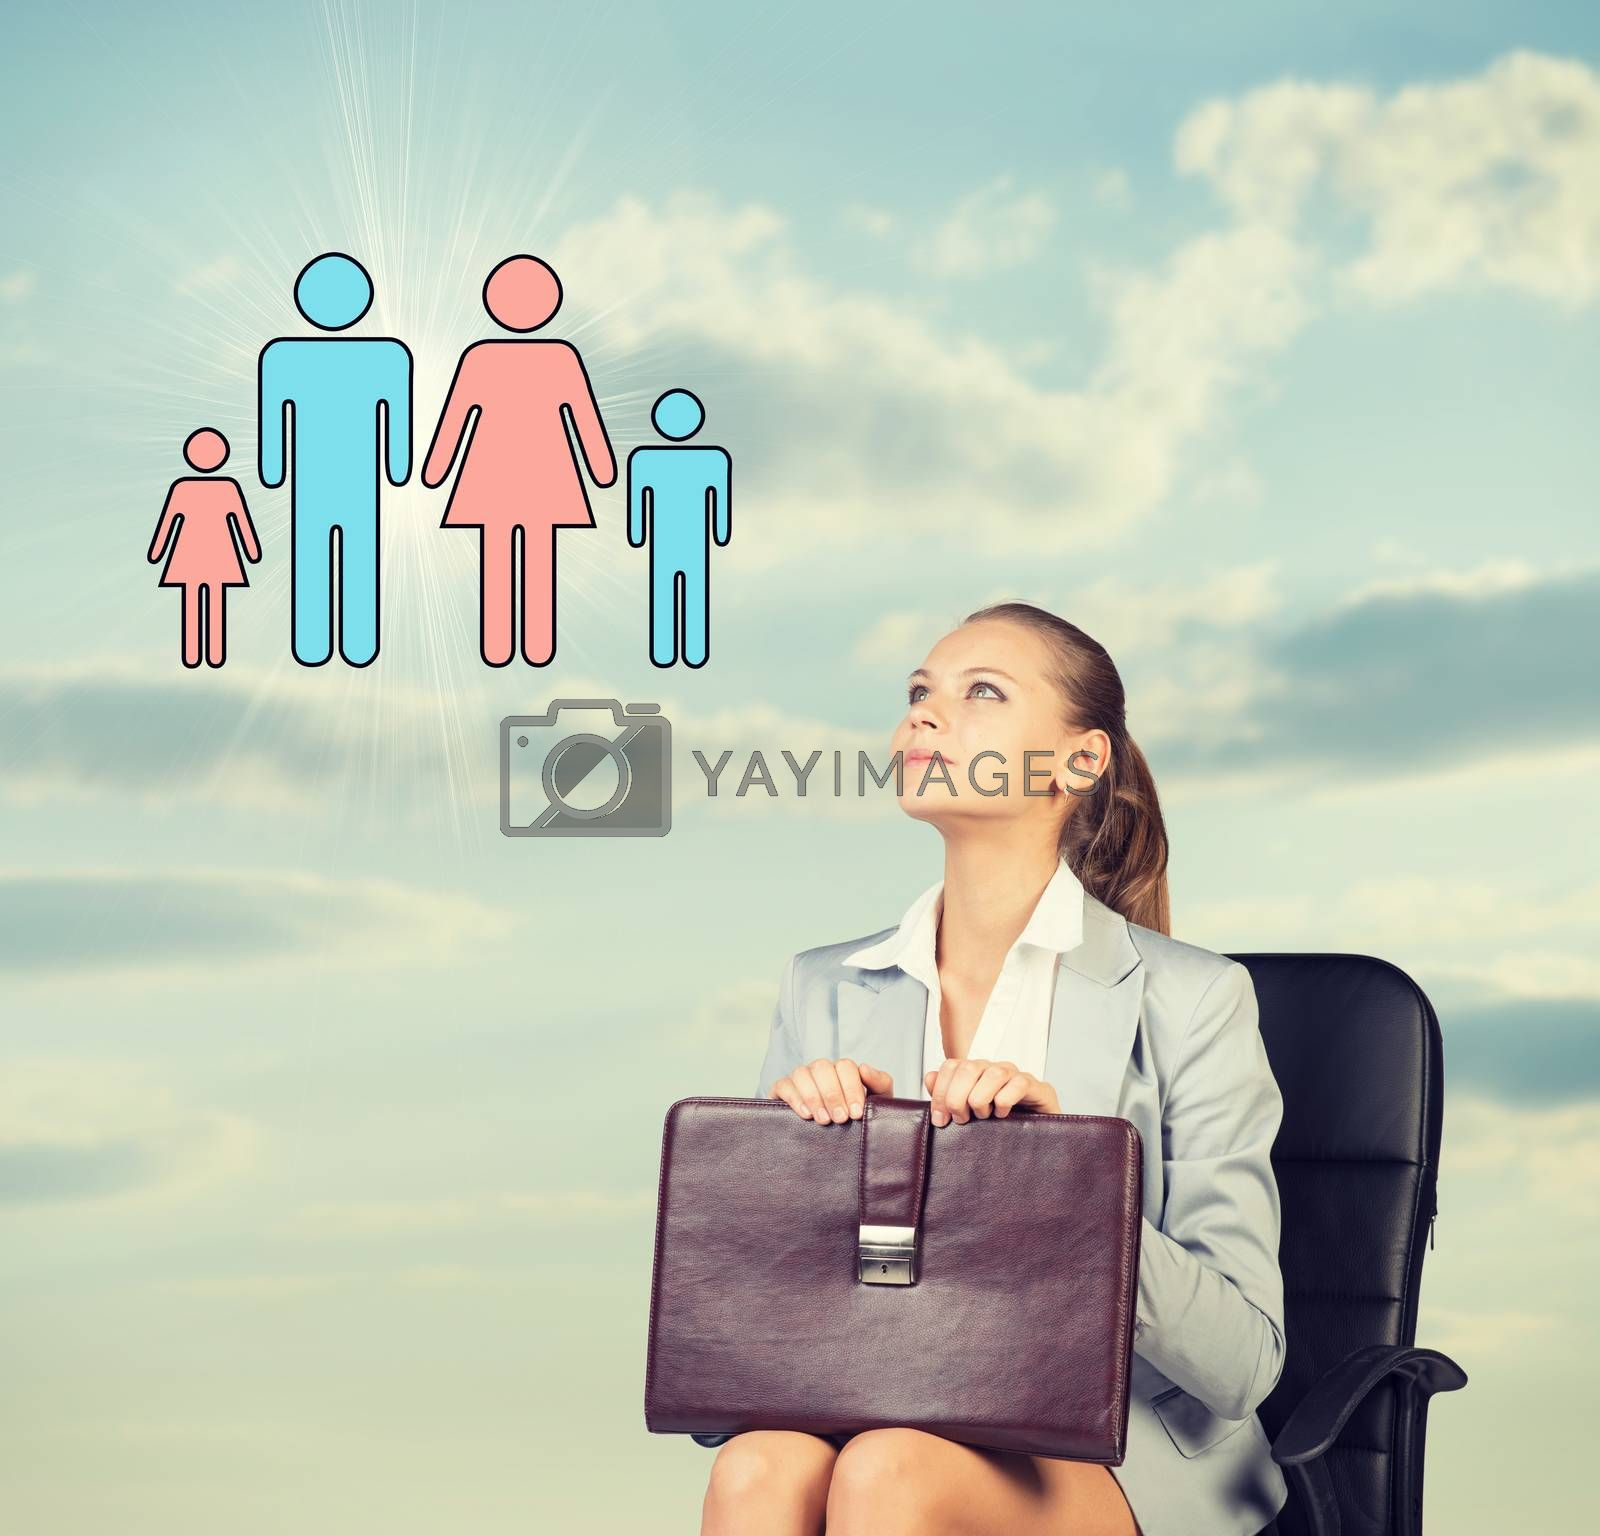 Business woman in skirt, blouse and jacket, sitting on chair imagines family. Against background of sky and clouds